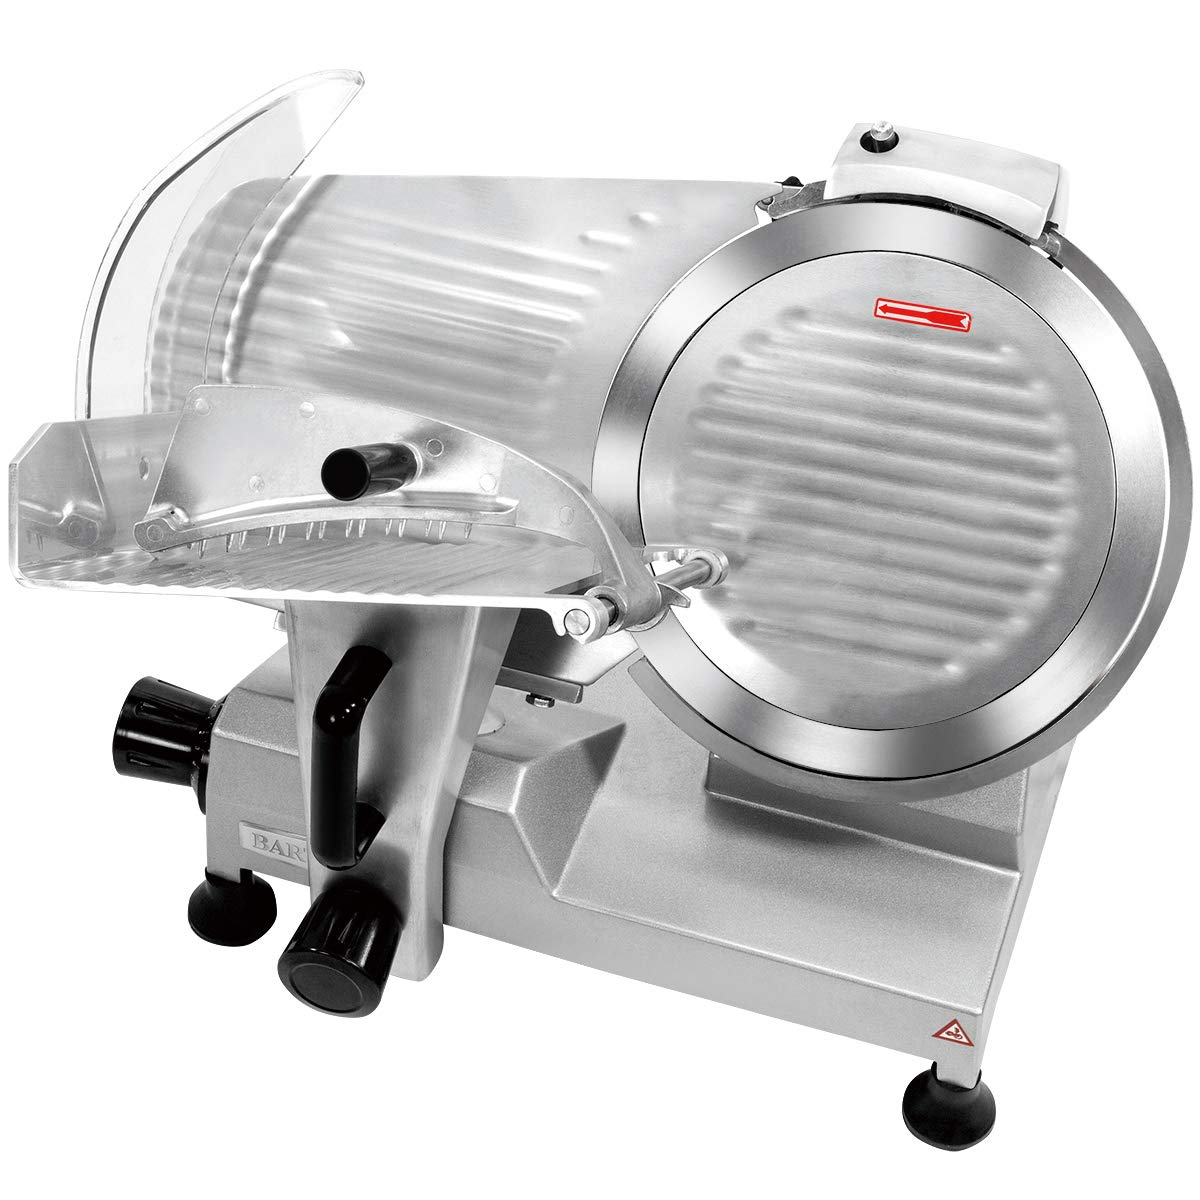 """Barton 12"""" Blade Commercial Stainless Steel Semi-Automatic Meat Slicer Electric Deli Food Slicer Veggies Cutter Premium Built-in Sharpener 320W"""